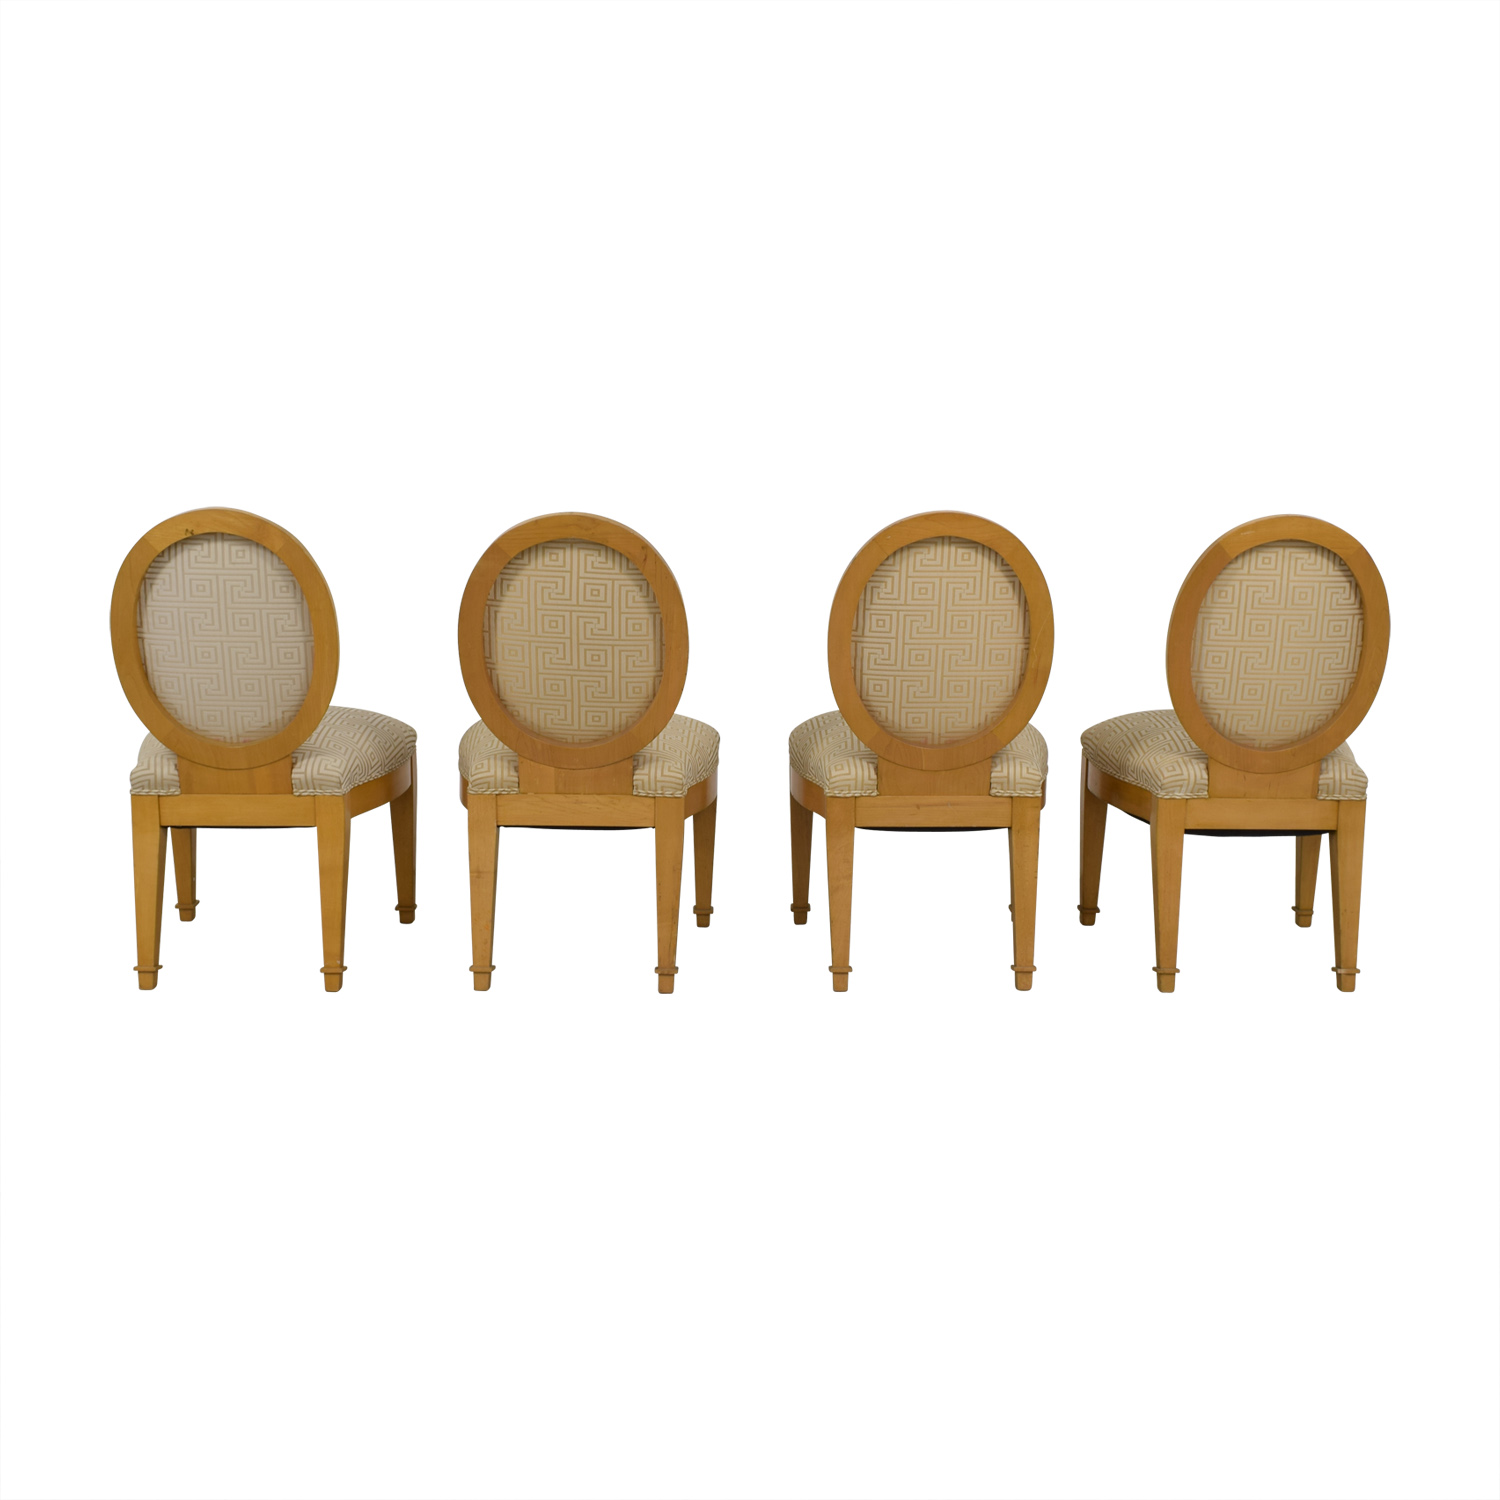 buy Furniture Masters Furniture Masters Tan and Beige Upholstered Dining Chairs online